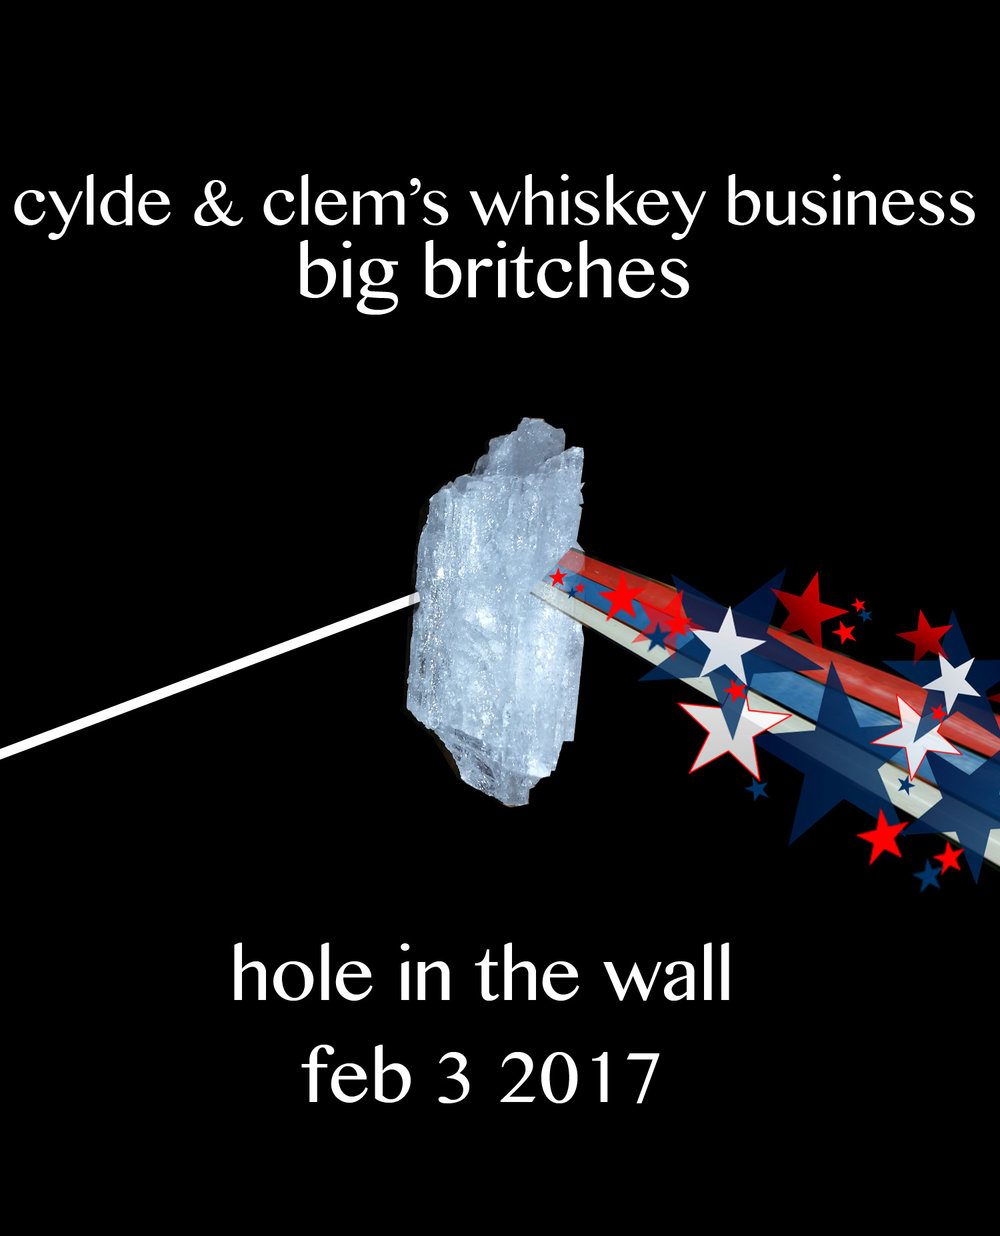 Feb 3 Hole in the wall.jpg